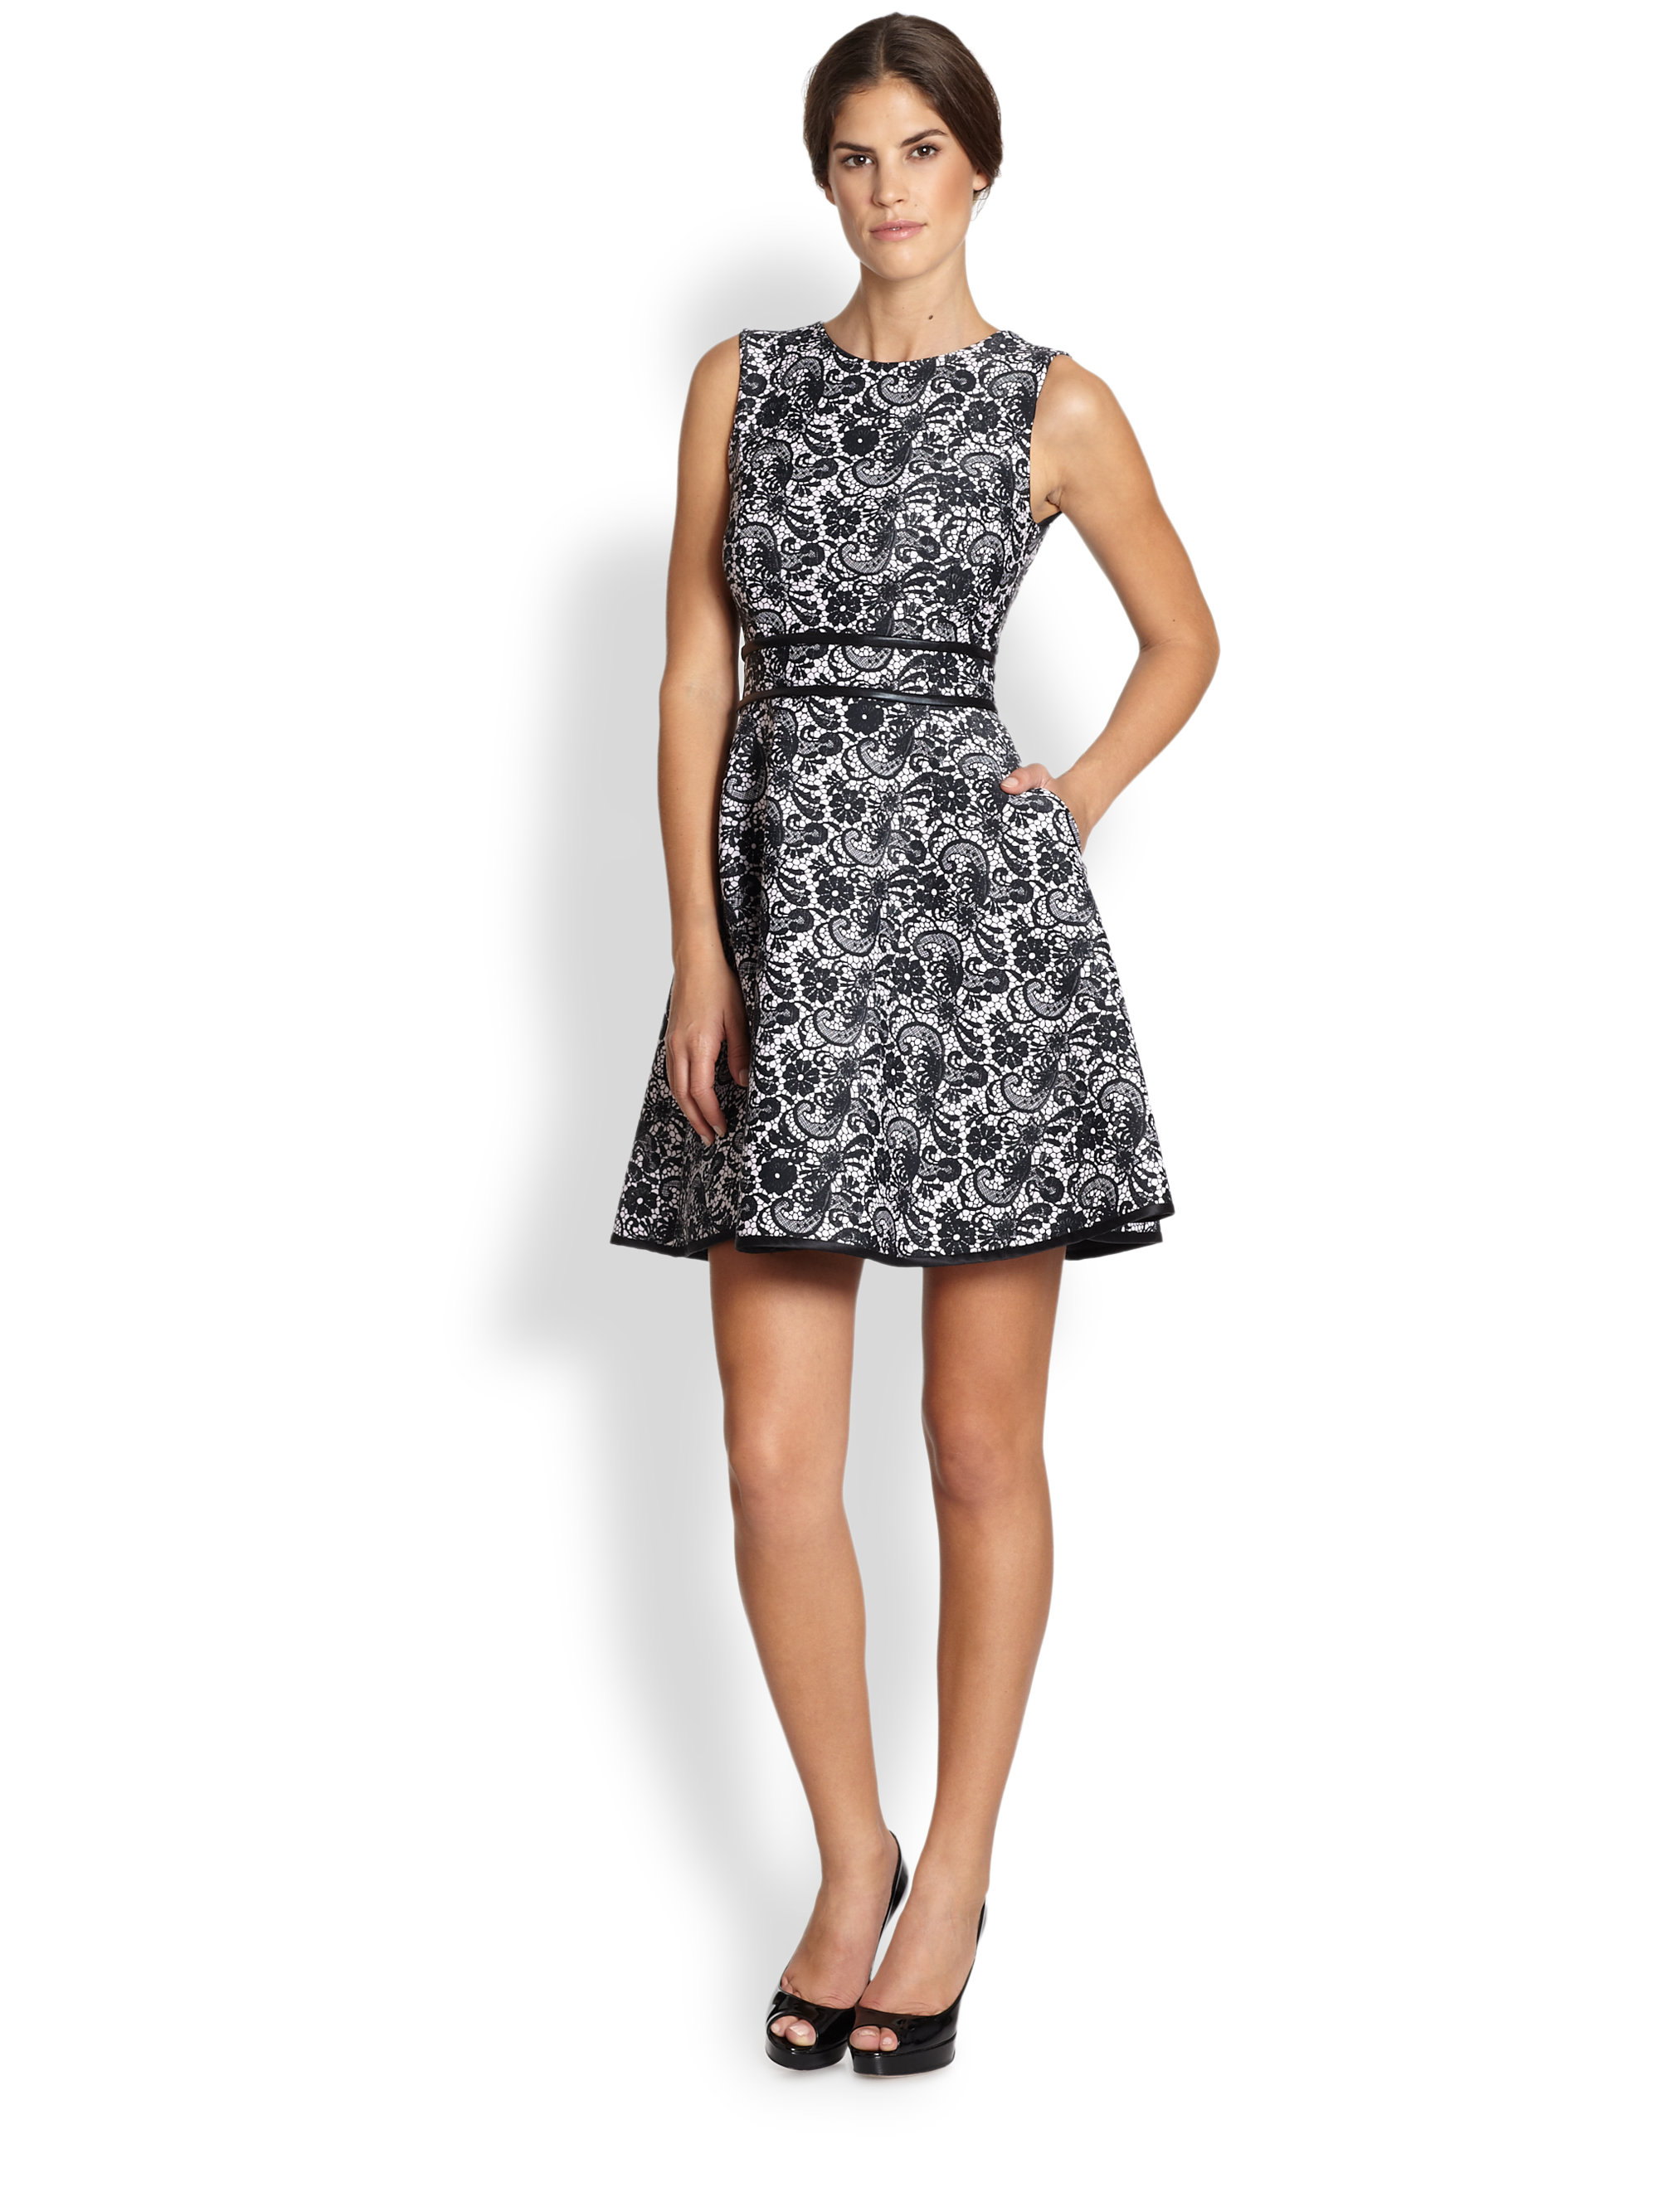 Lyst Cynthia Rowley Lace Print Sleeveless Dress In Black